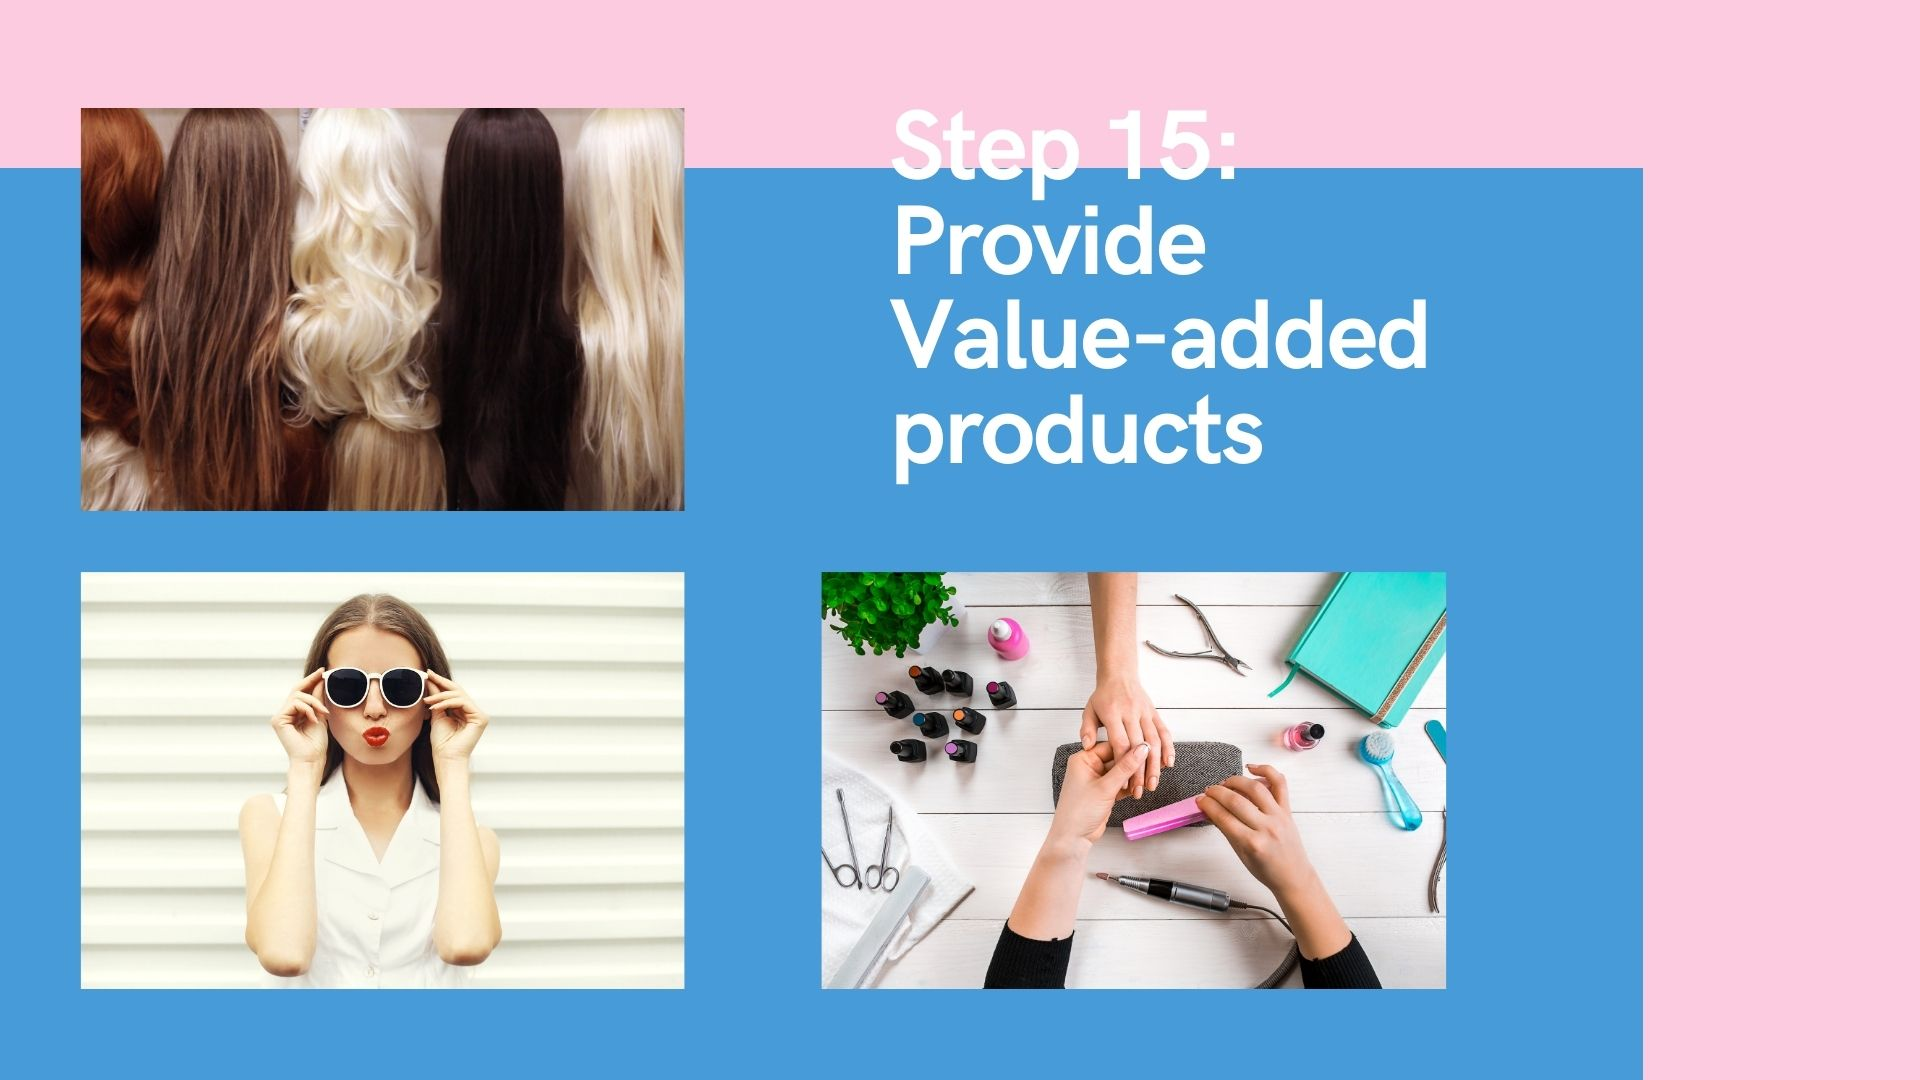 Step 15 Provide Value-added products